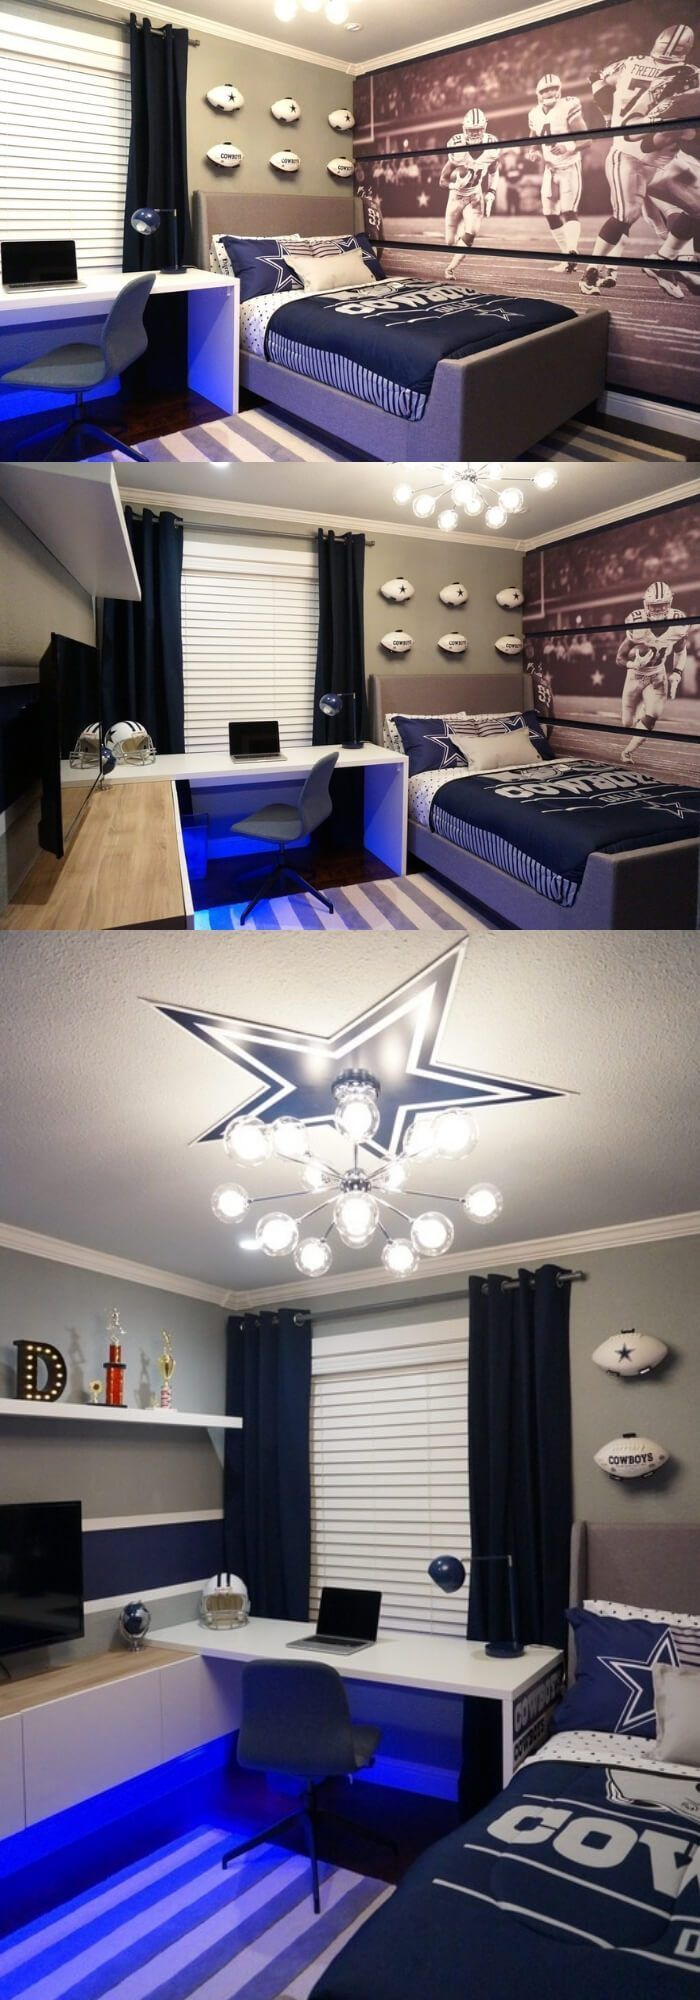 50+ Cool Teen Bedroom Ideas For Boys - FarmFoodFamily images